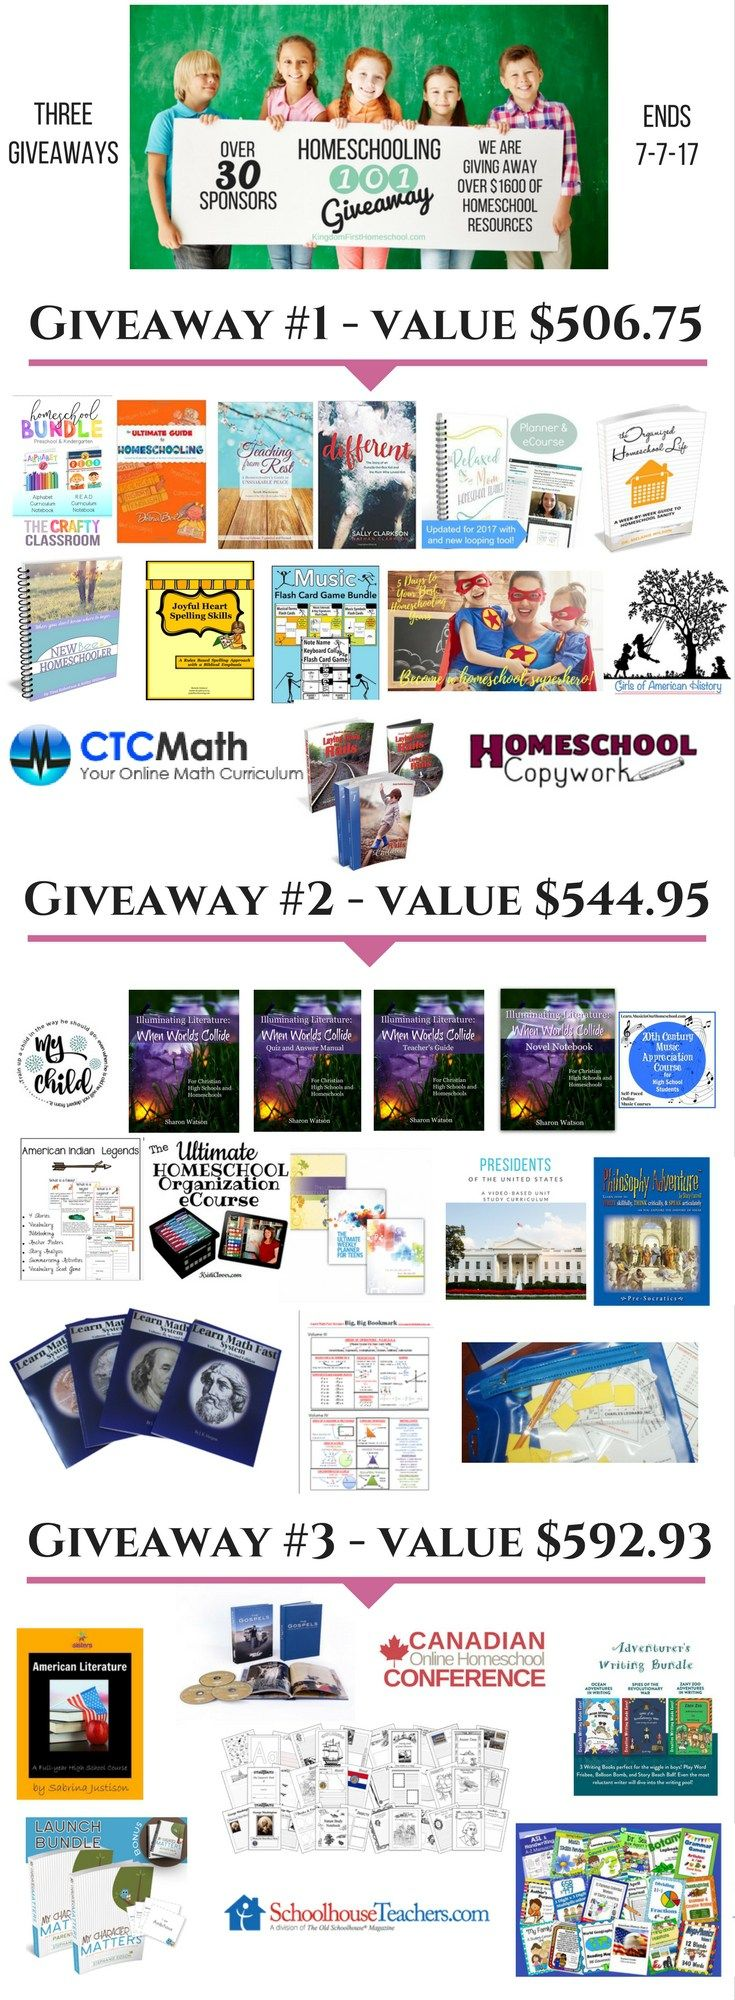 We are giving away over $1600 in homeschooling resources!  3 amazing homeschool giveaways for you! Click to enter all three now!